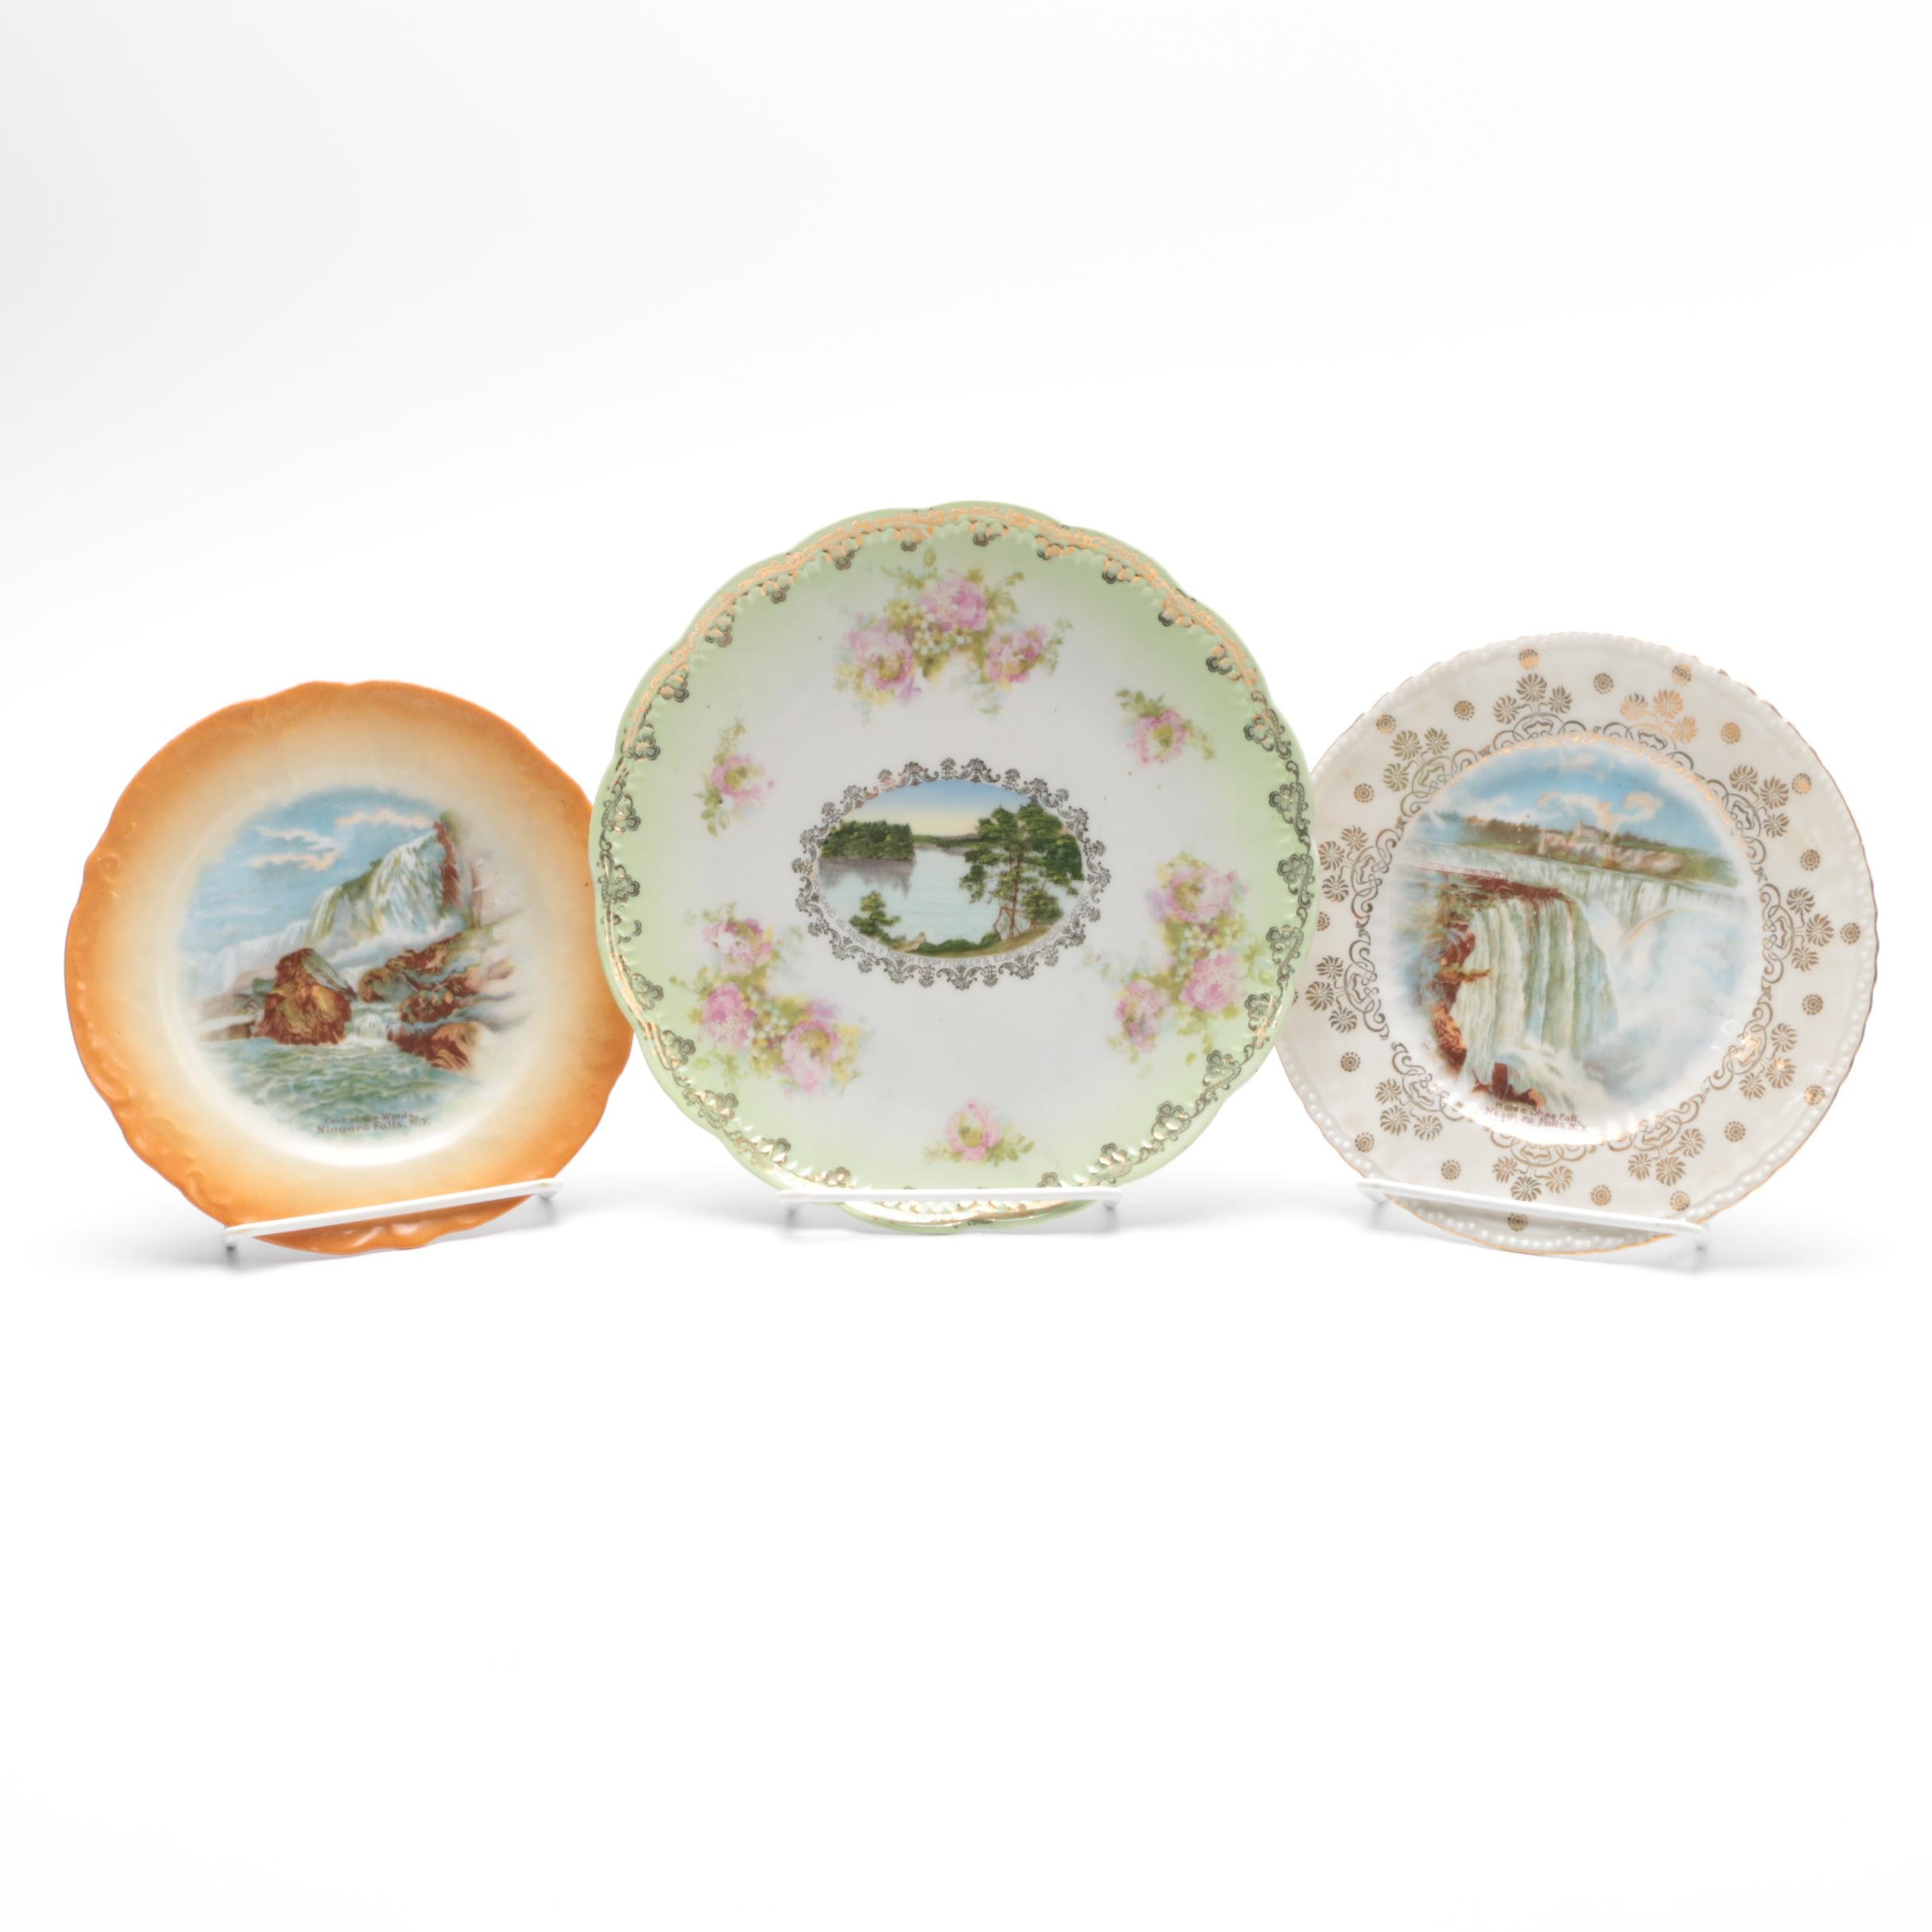 Three Porcelain Scenic Plates